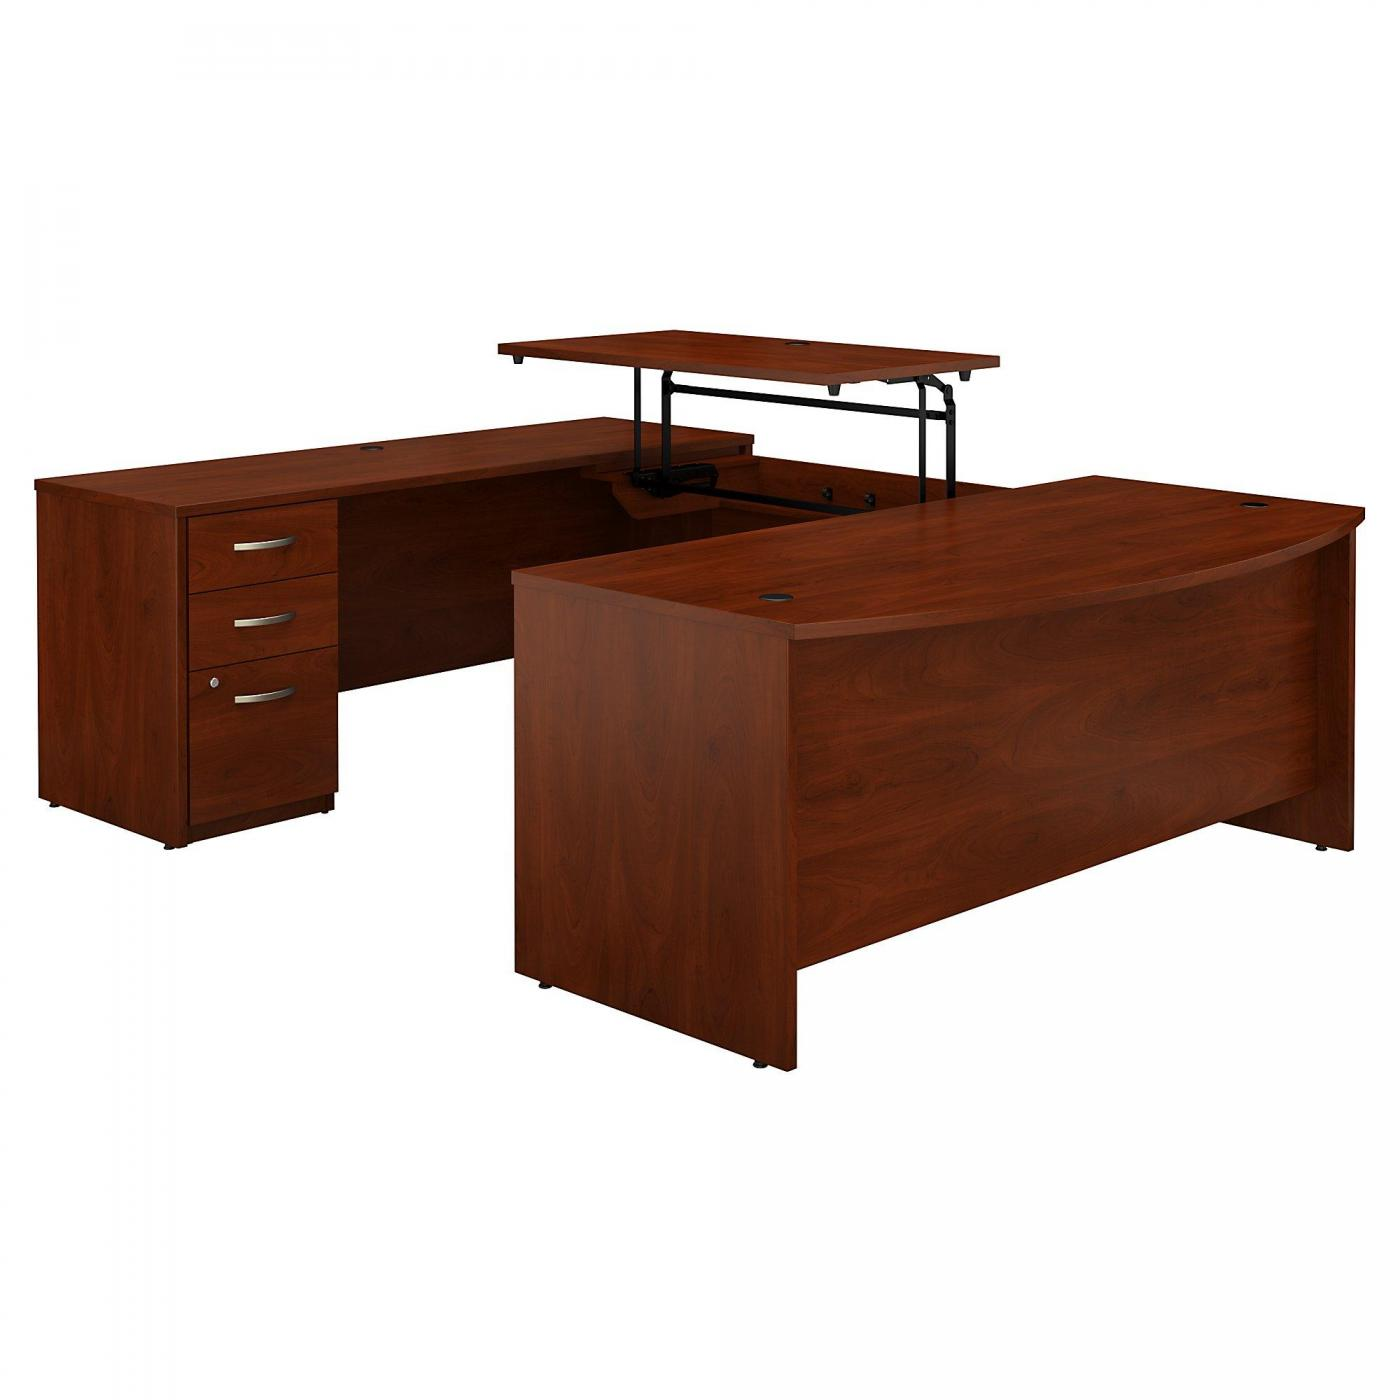 <font color=#c60><b>BUSH BUSINESS FURNITURE SERIES C ELITE 72W X 36D 3 POSITION SIT TO STAND BOW FRONT U SHAPED DESK WITH 3 DRAWER FILE CABINET. FREE SHIPPING. VIDEO:</font></b>